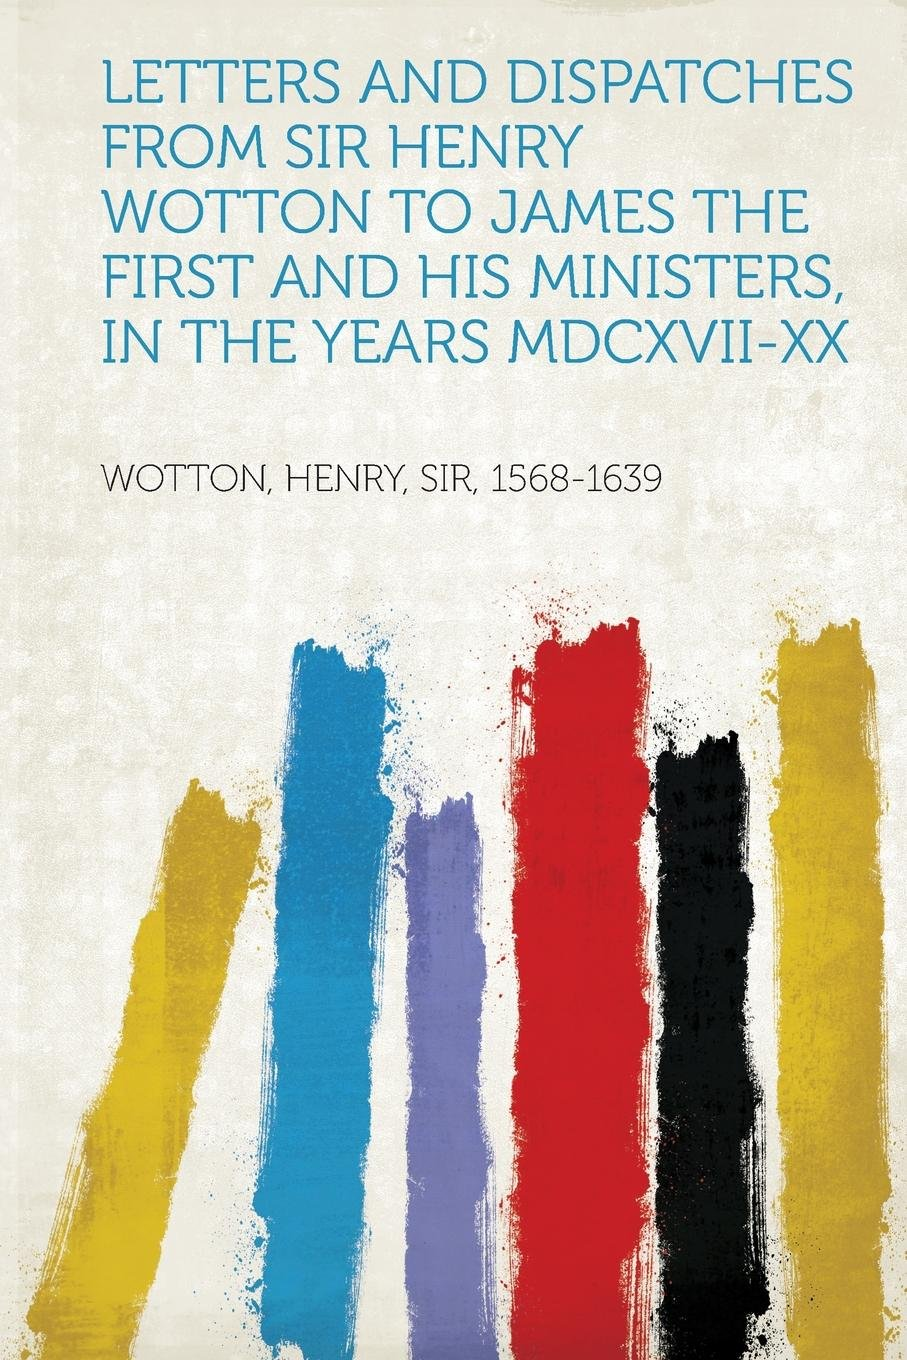 Download Letters and Dispatches from Sir Henry Wotton to James the First and His Ministers, in the Years MDCXVII-XX PDF